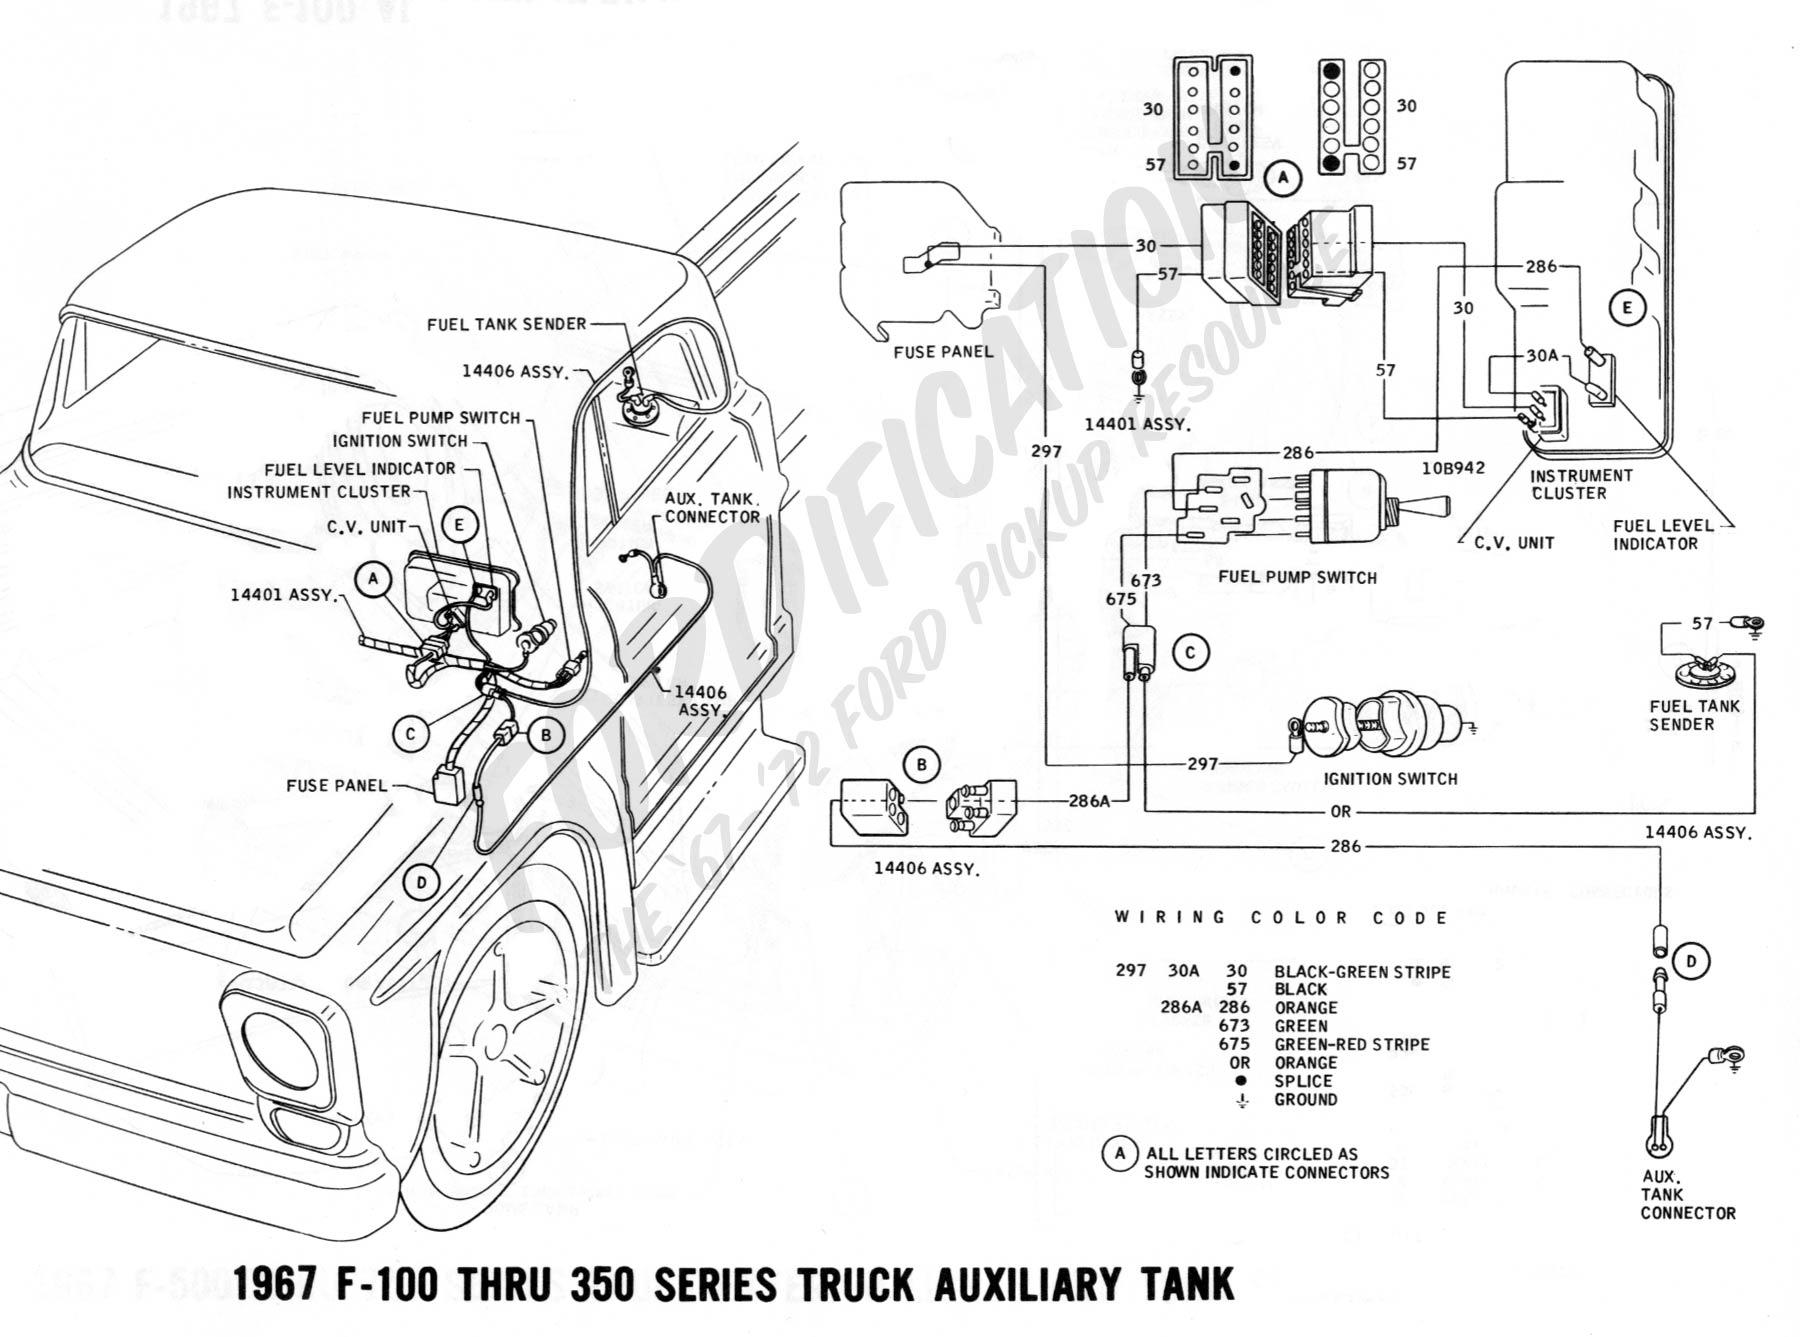 wiring 1967auxtank ford truck technical drawings and schematics section h wiring Ford F700 Wiring Diagrams at readyjetset.co